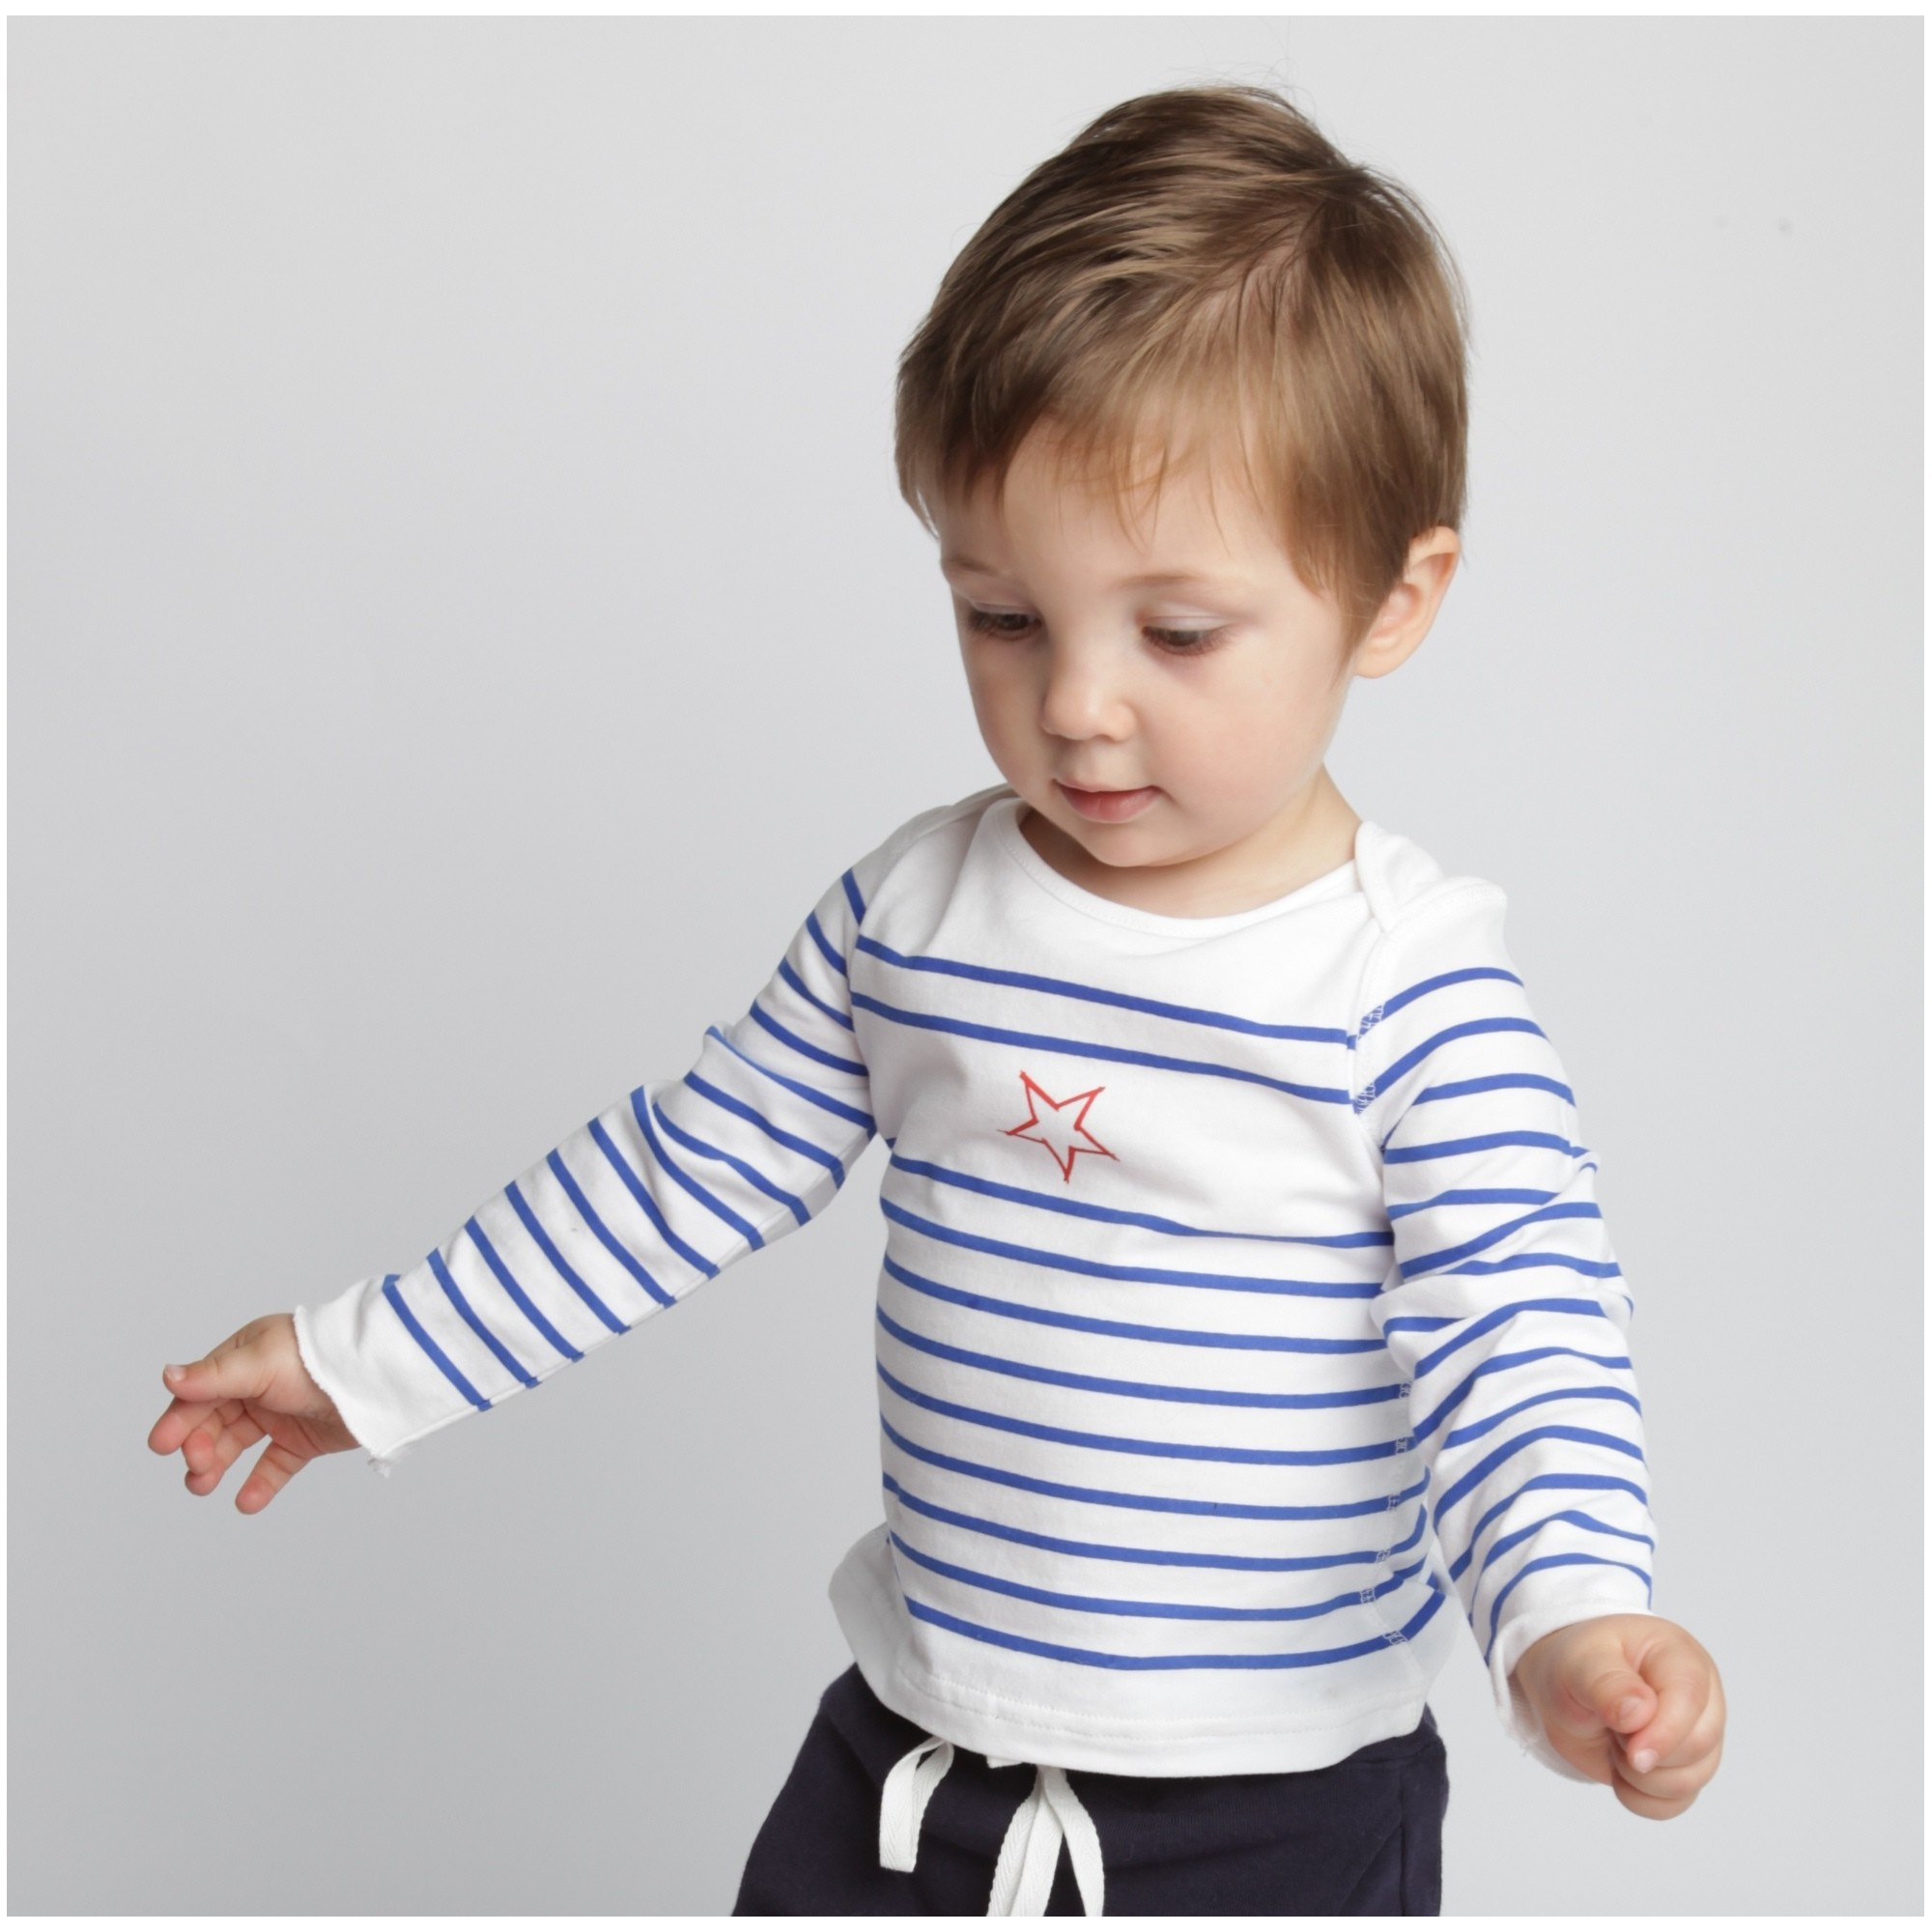 Long sleeves baby T-Shirt with blue stripes and red star 100% soft cotton with navy bleu baby jogging